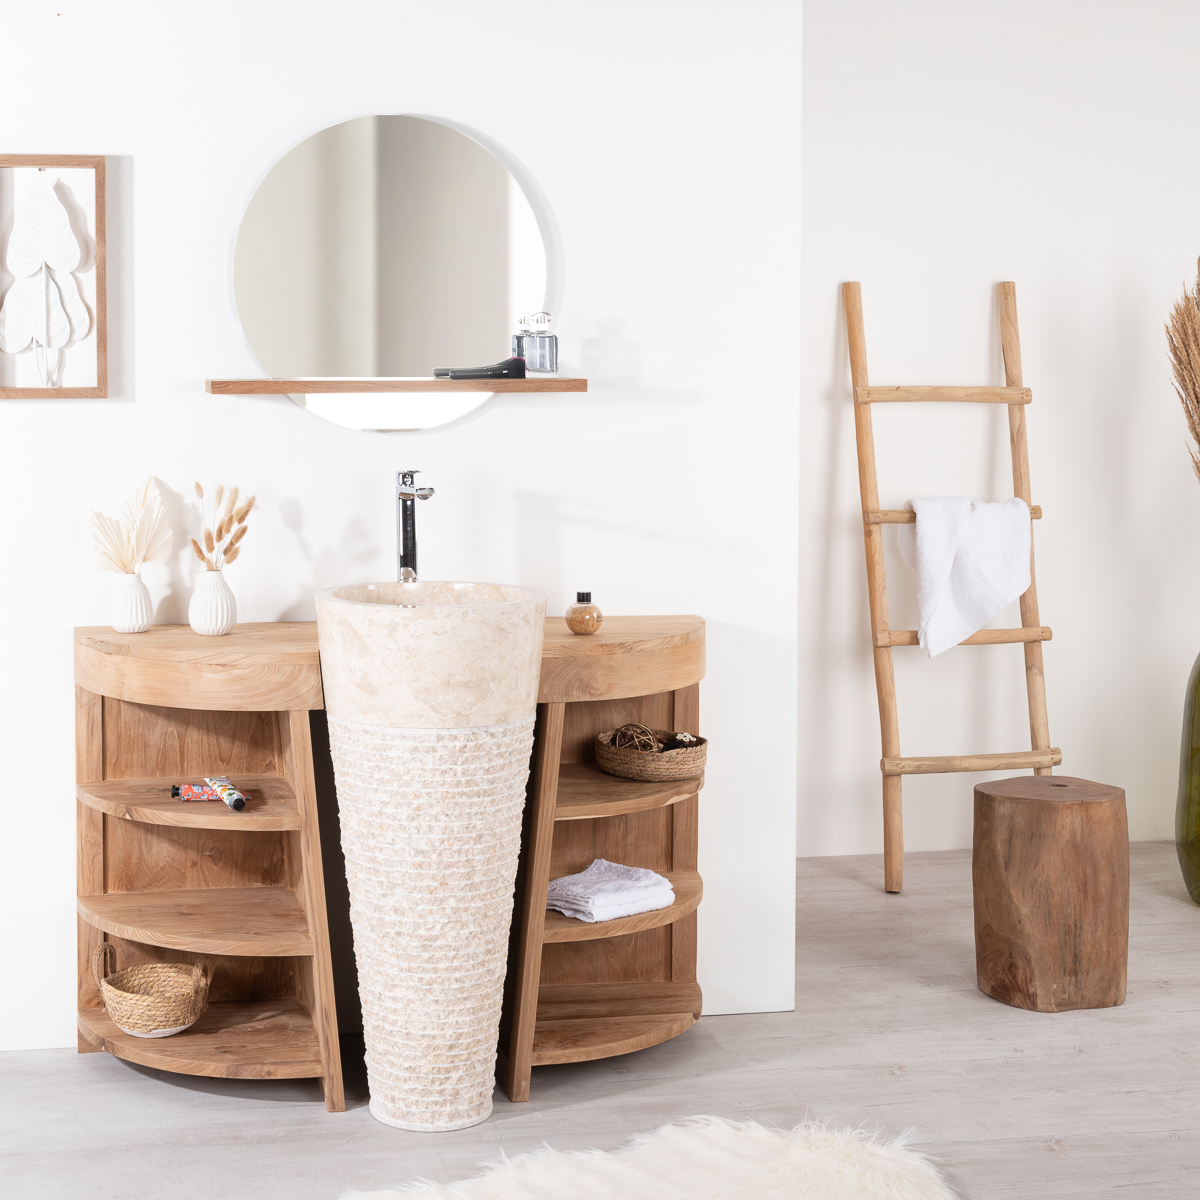 miroir de salle de bain tablette en bois massif teck bologne rond naturel d 60 cm. Black Bedroom Furniture Sets. Home Design Ideas